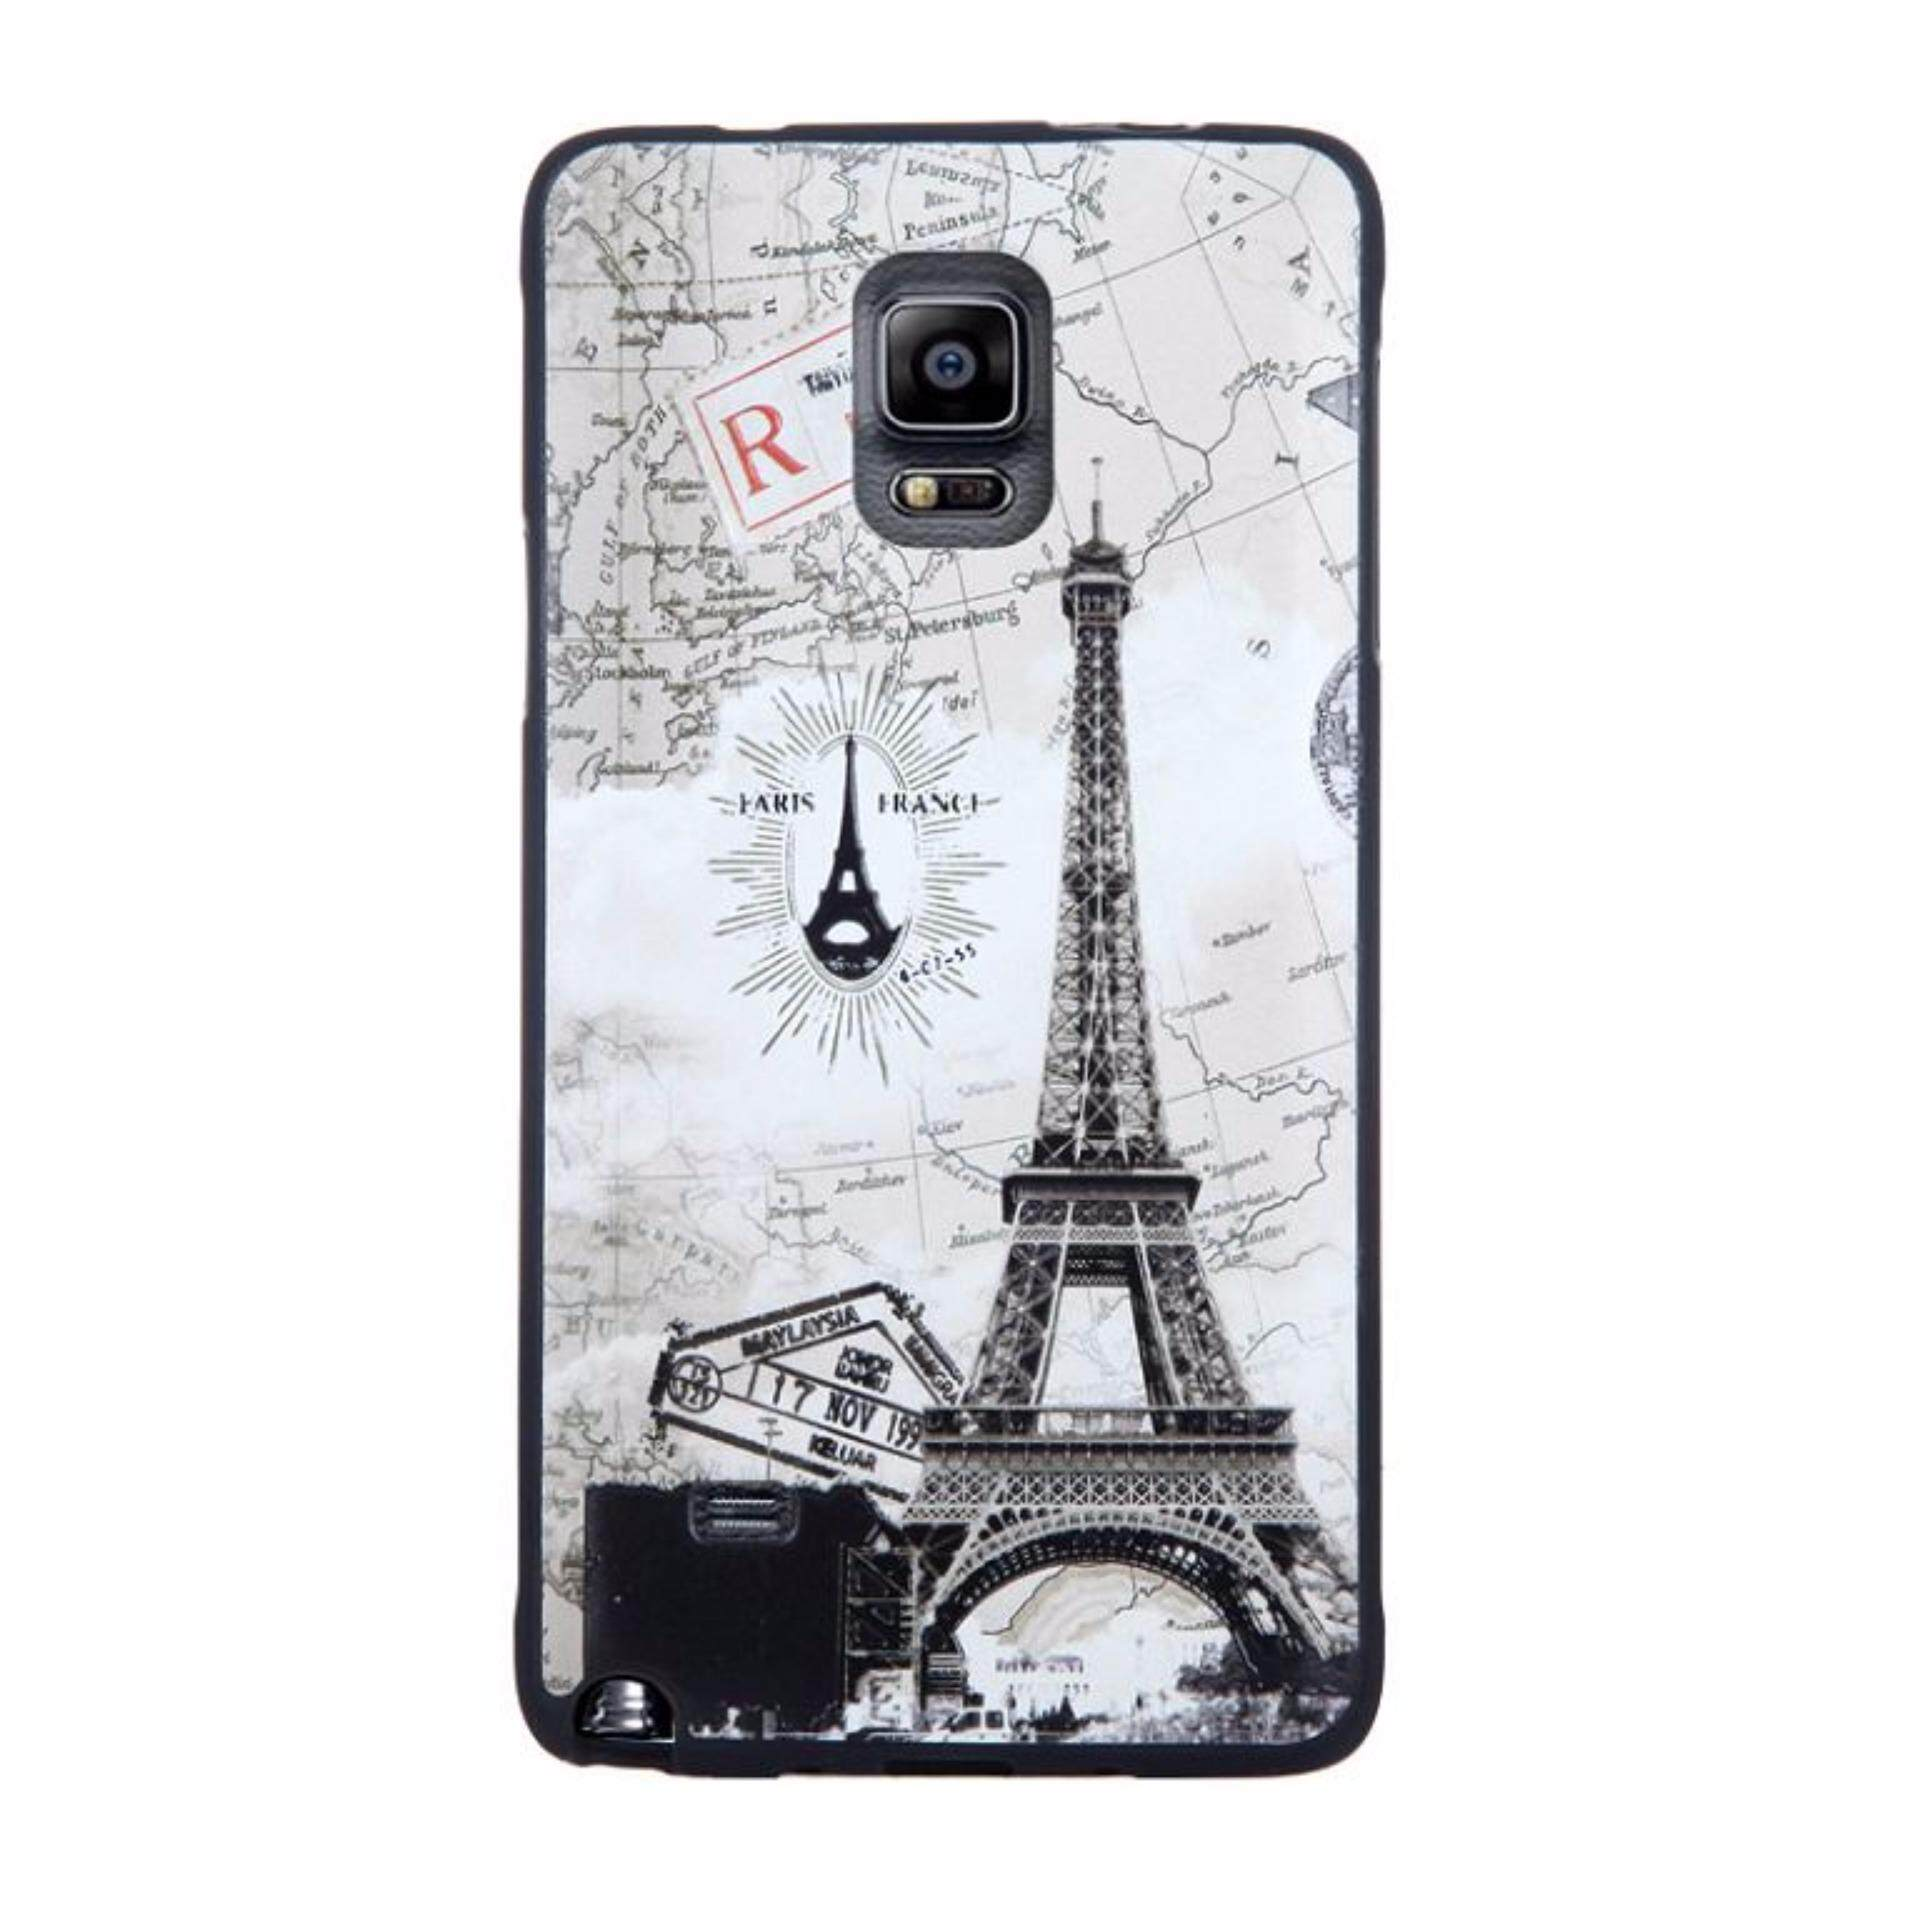 Soft TPU 3D Embossed Painting Cover Case For Samsung Galaxy Note 4(Map tower)